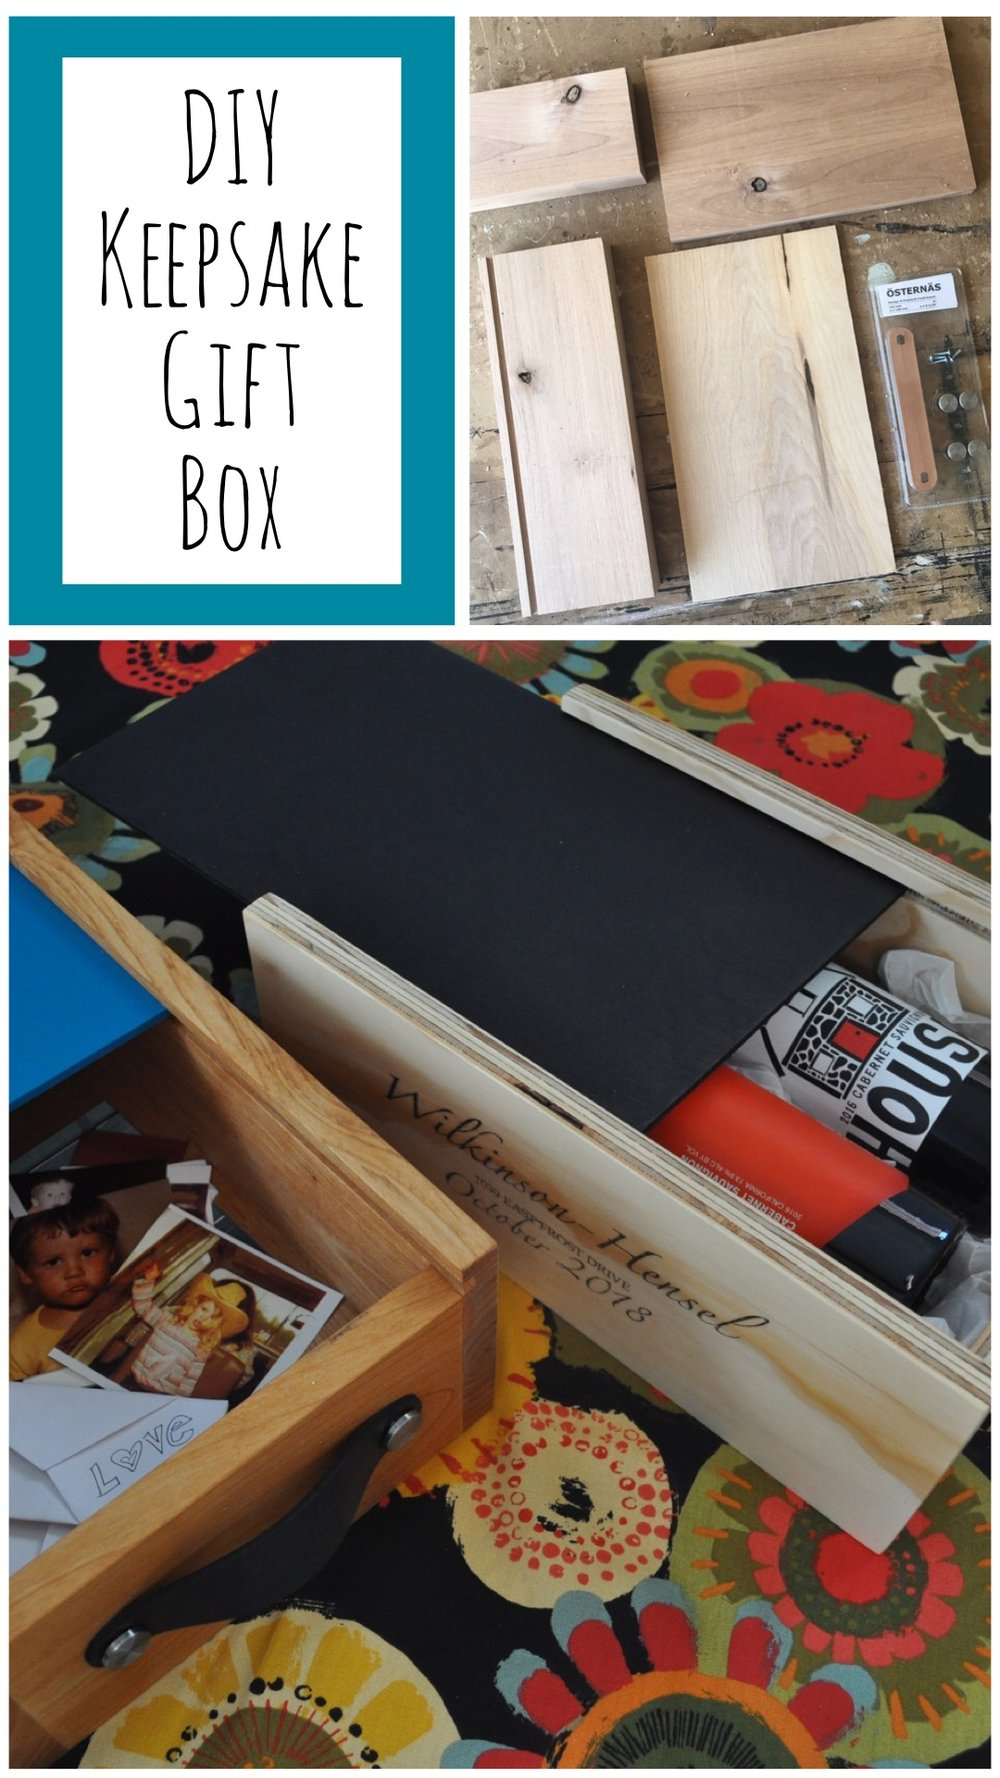 DIY Keepsake Gift Box Pinterest.JPG